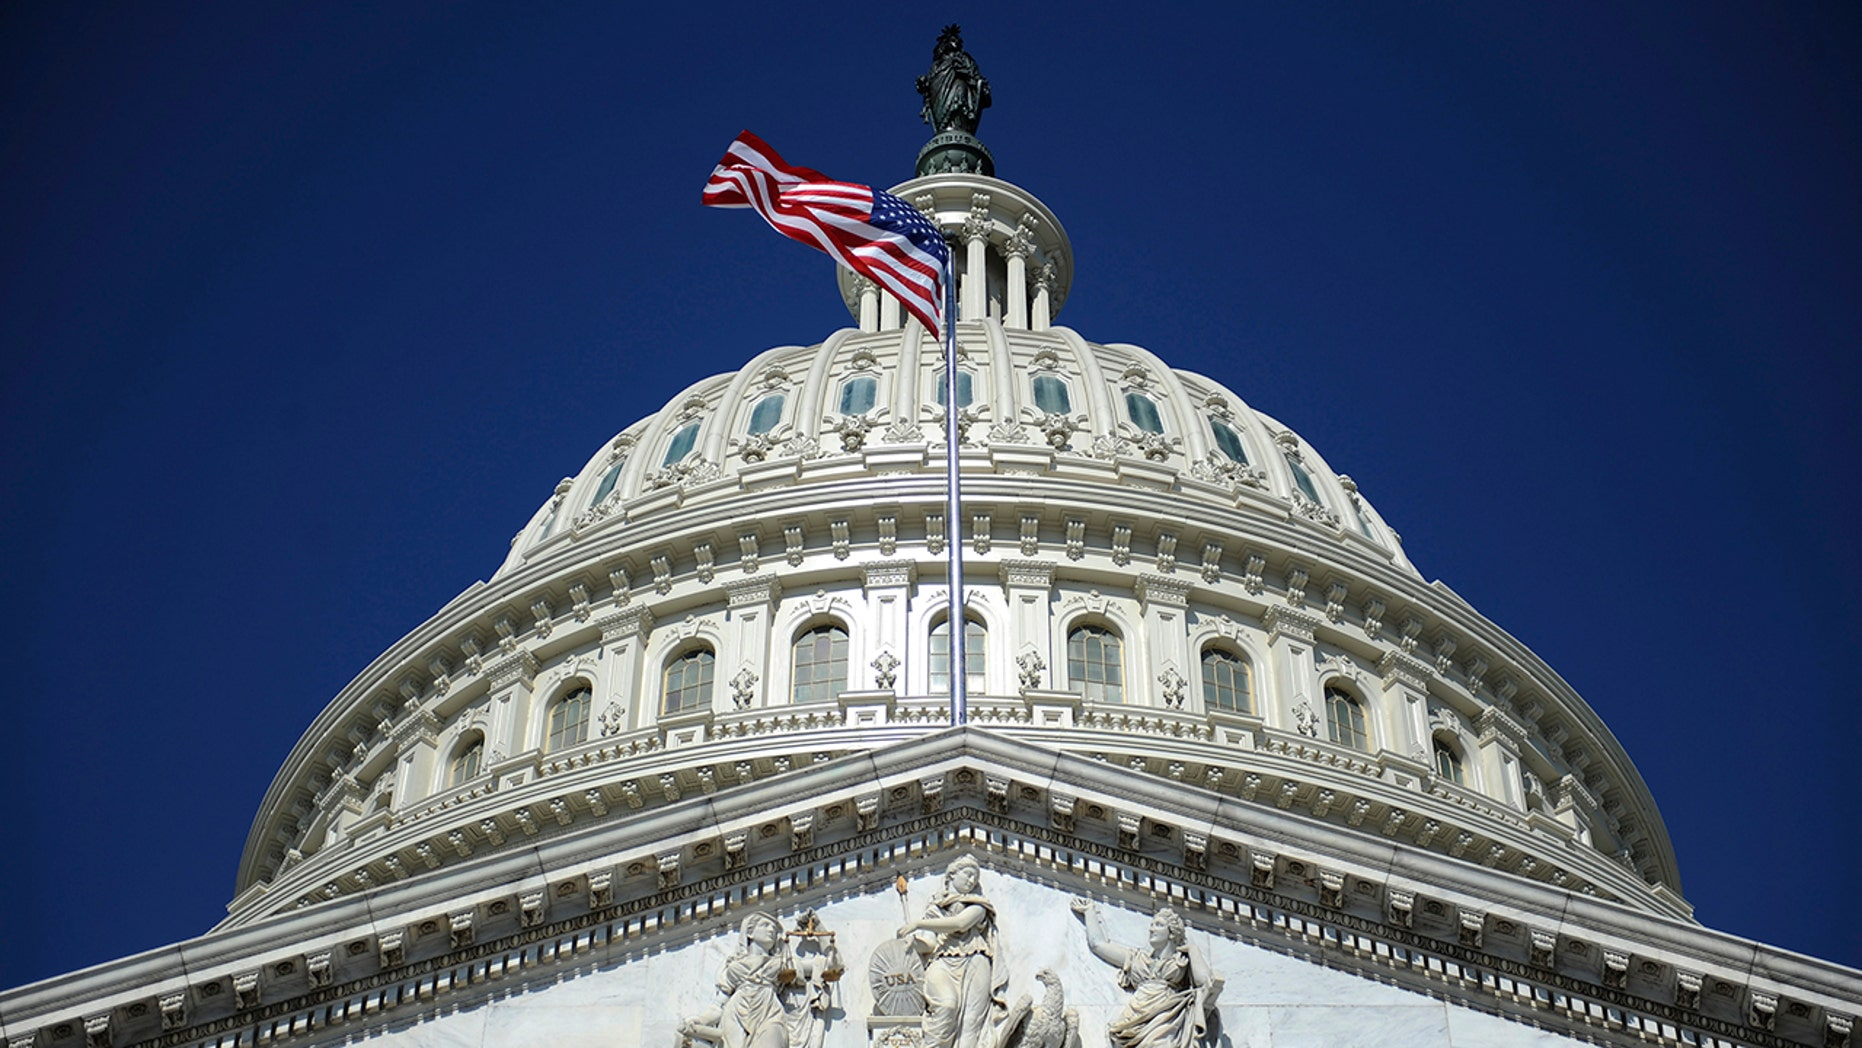 The U.S. Capitol dome in Washington, August 2, 2011. The United States is poised to step back from the brink of economic disaster on Tuesday when a bitterly fought deal to cut the budget deficit is expected to clear its final hurdles in the U.S. Senate.  REUTERS/Jonathan Ernst   (UNITED STATES - Tags: POLITICS BUSINESS) - GM1E7821SLA01